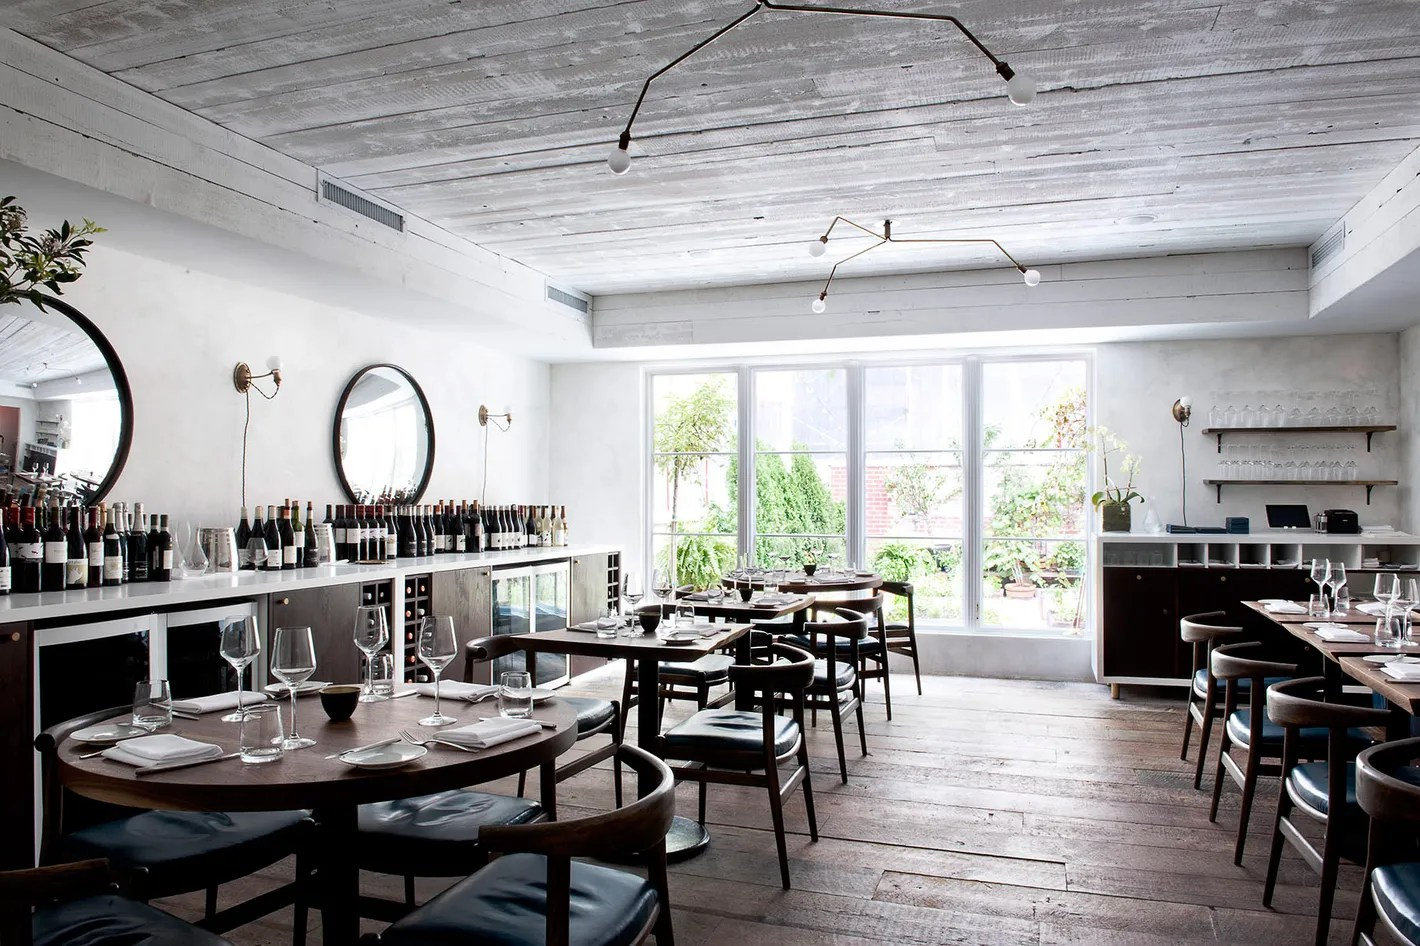 John Andrews Farmhouse Restaurant The Next Avroko 11 New York Restaurant Designers To Watch